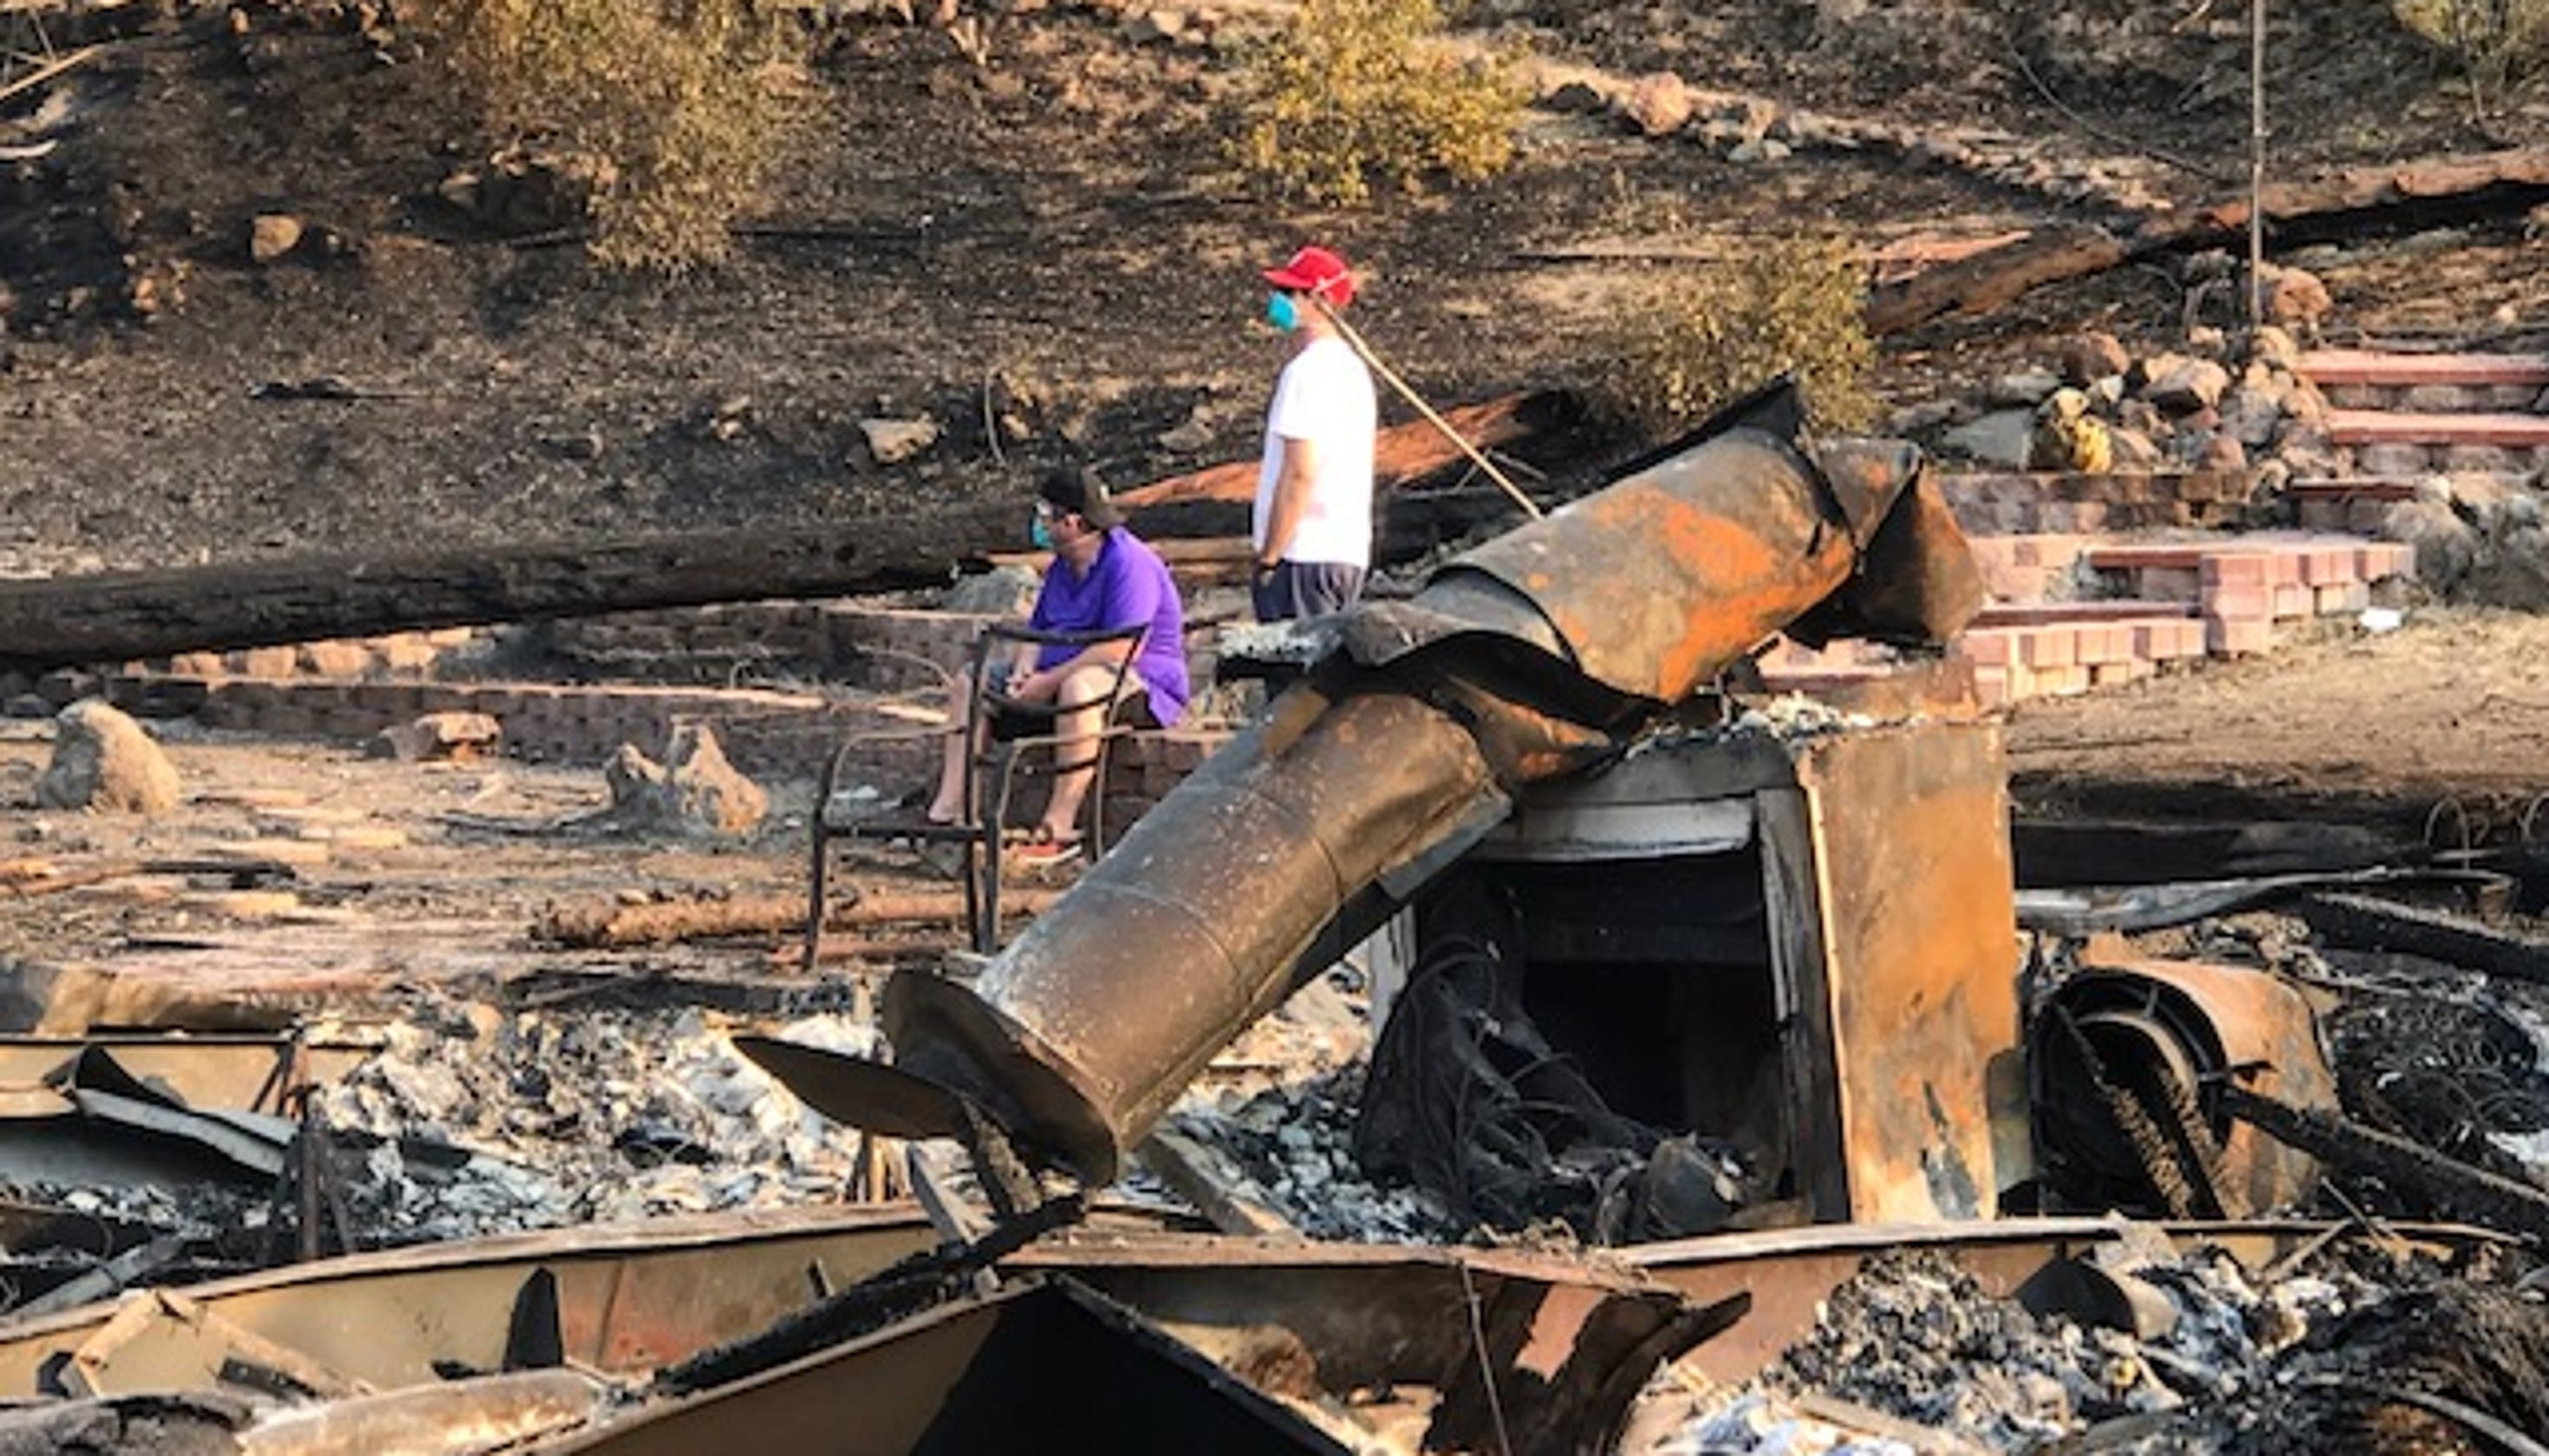 Woolsey Fire: New lawsuit blames Southern California Edison